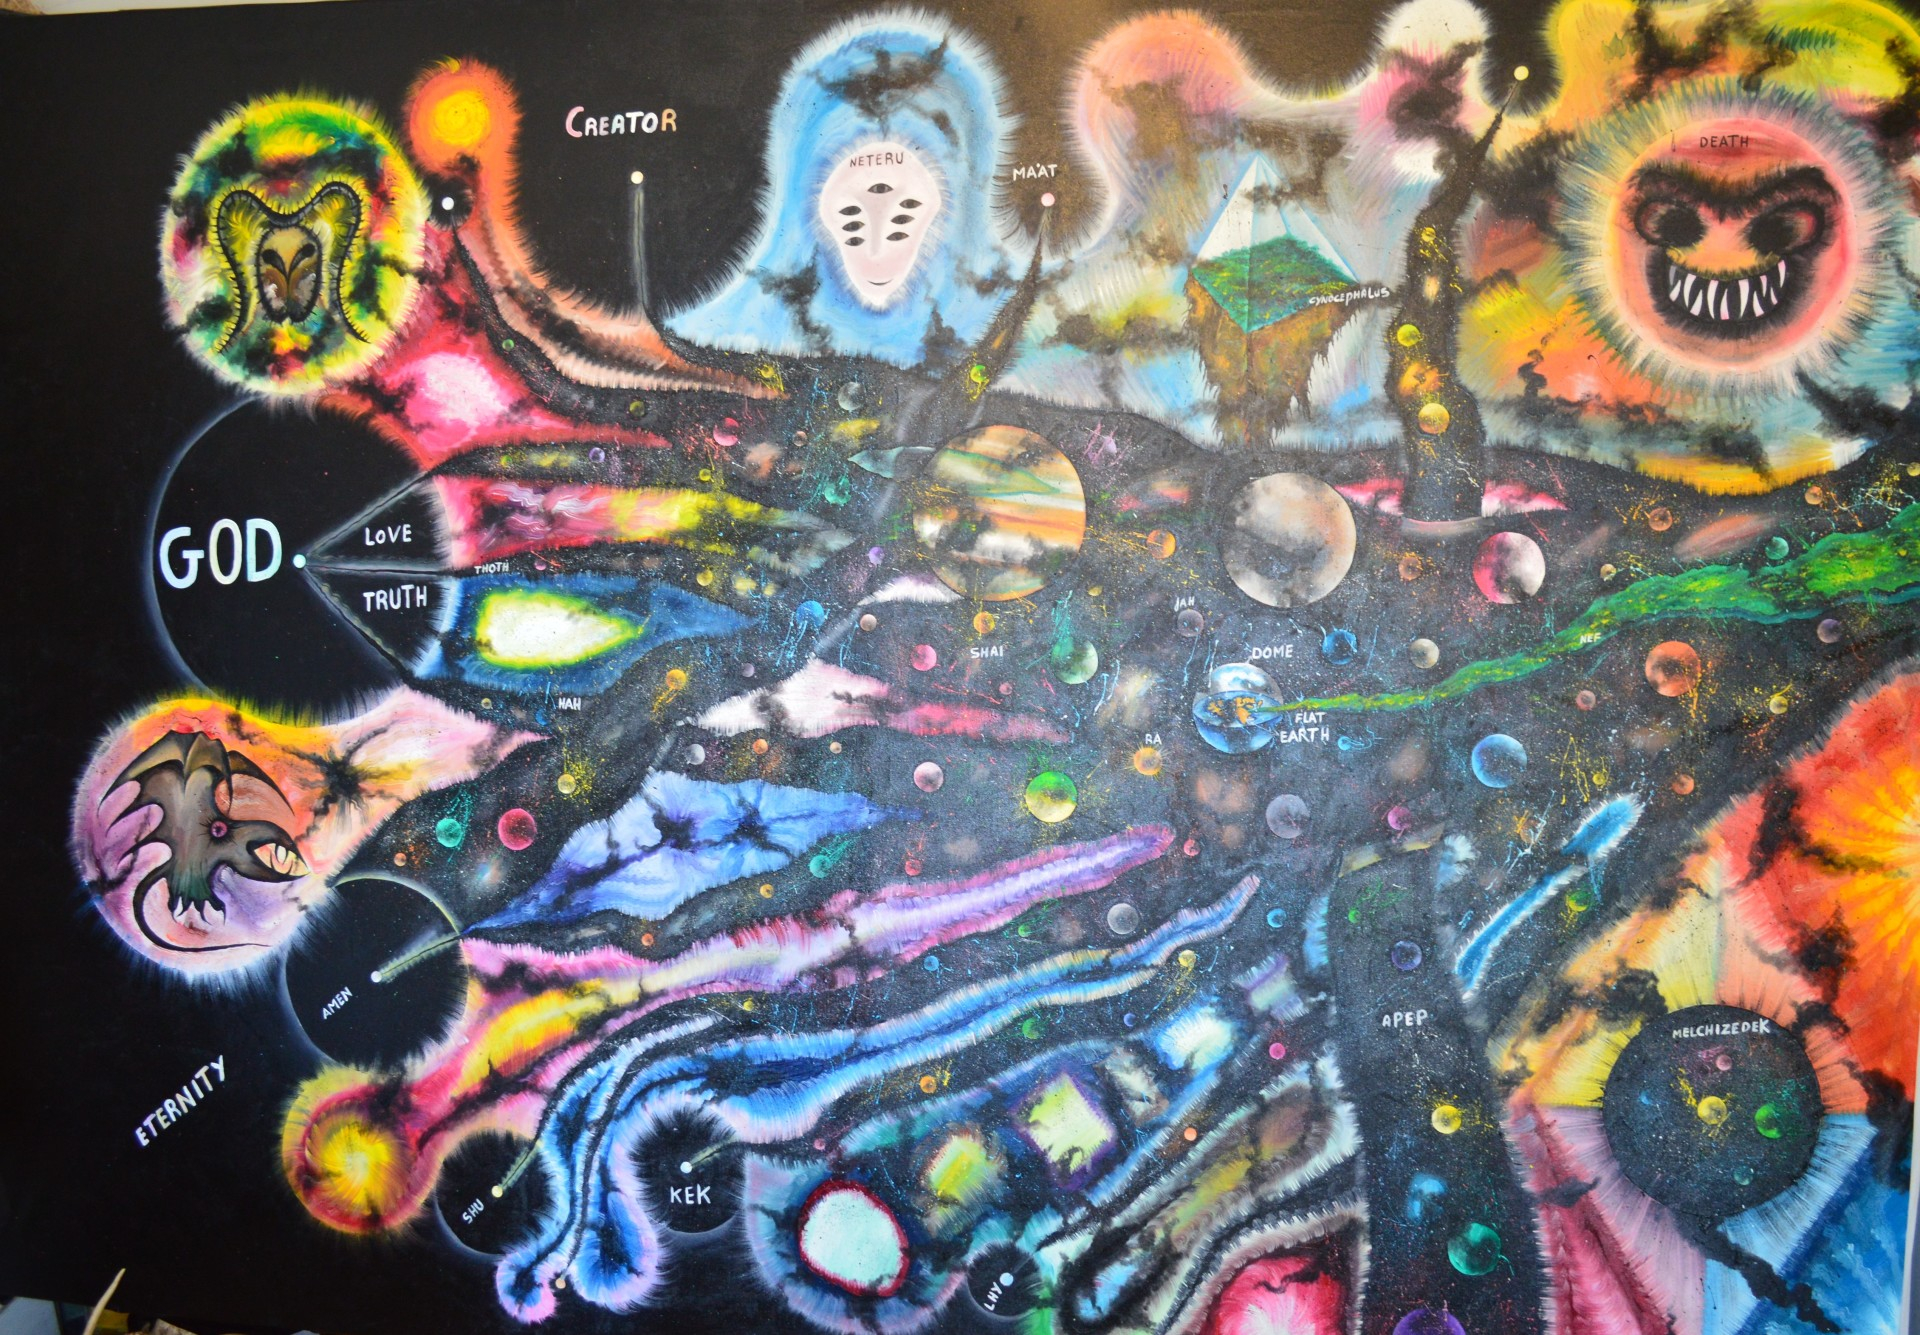 Part 1 - The Multidimensional Universe